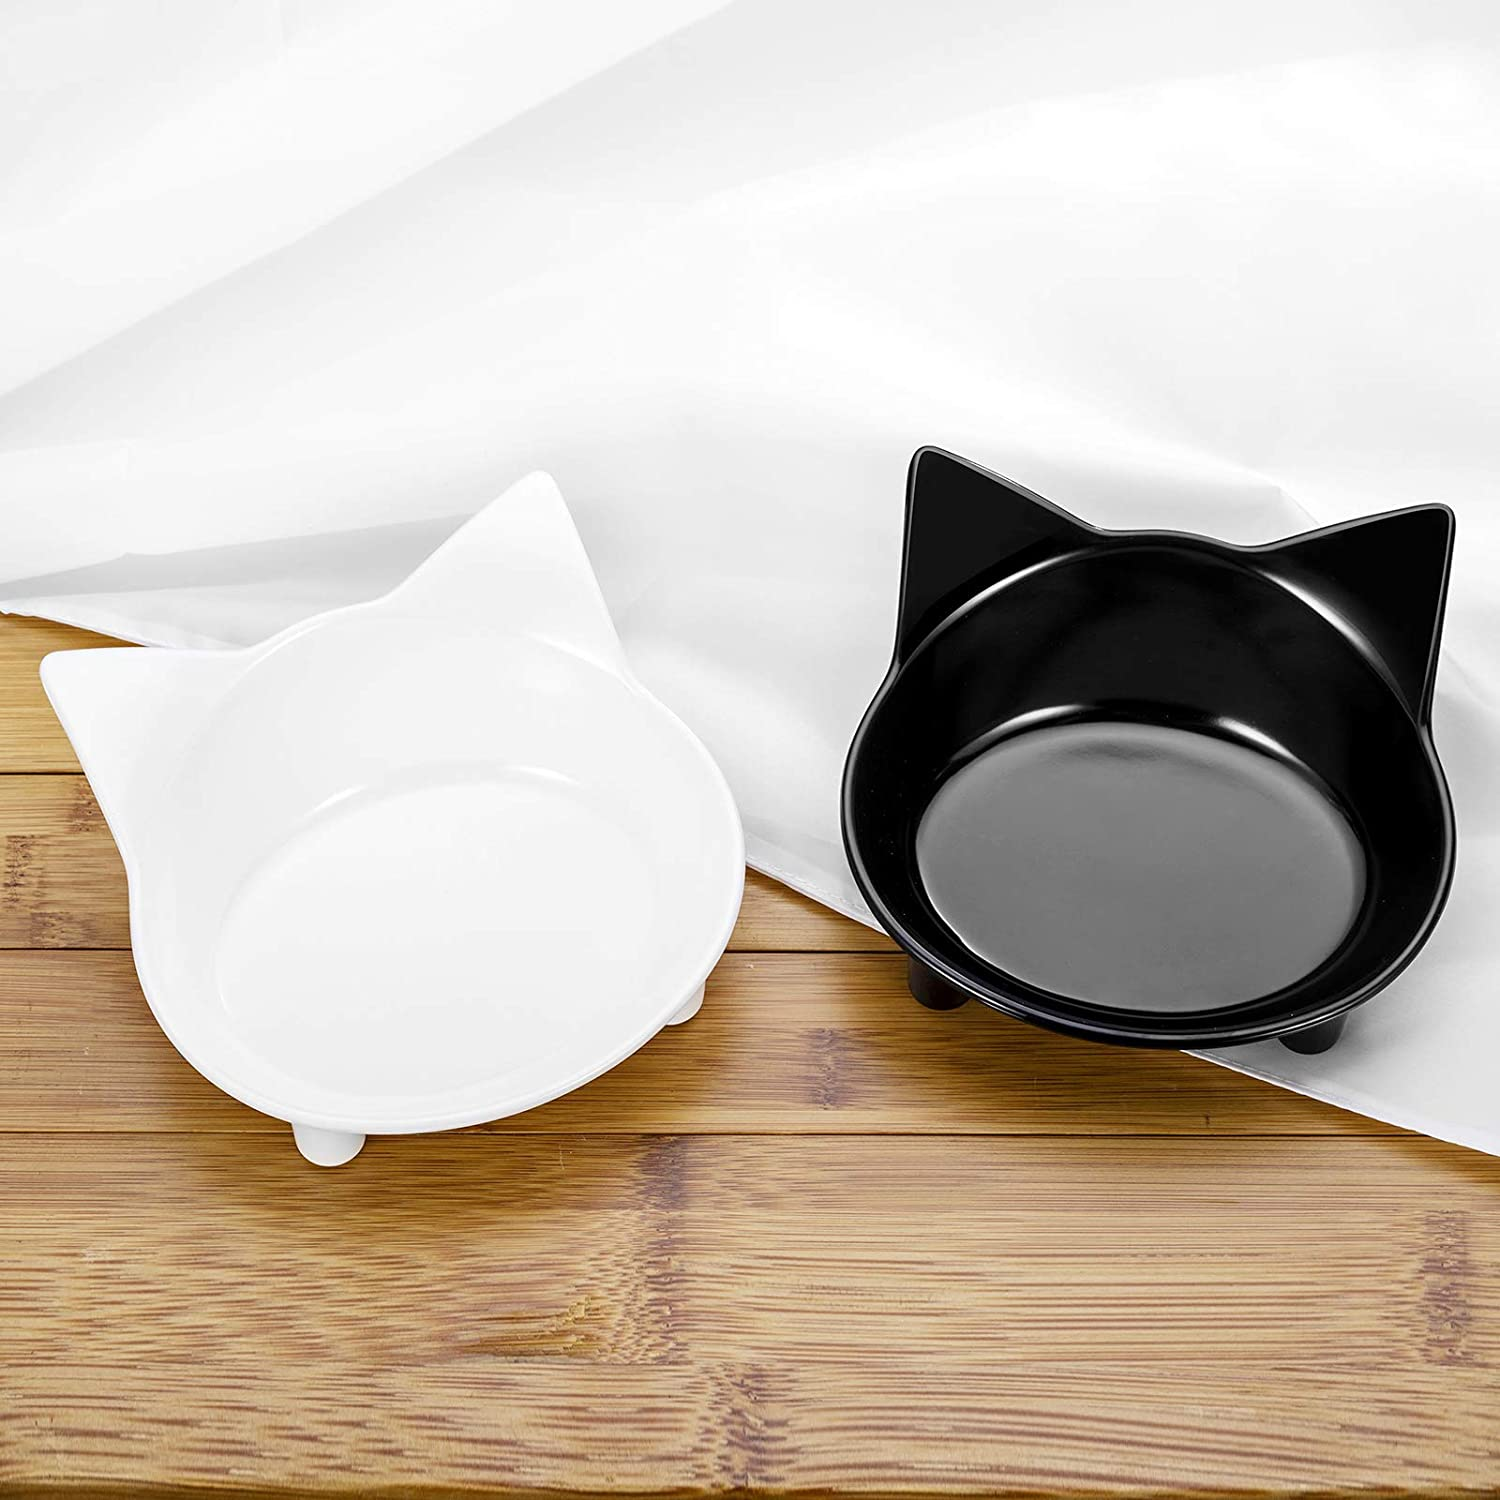 Cat Bowls Set of 2 Shallow Cat Food Bowls Whisker Fatigue Stress Relief Non Slip Cat Dishes for Food Cat Feeder Cat Water Bowl Black and White Color